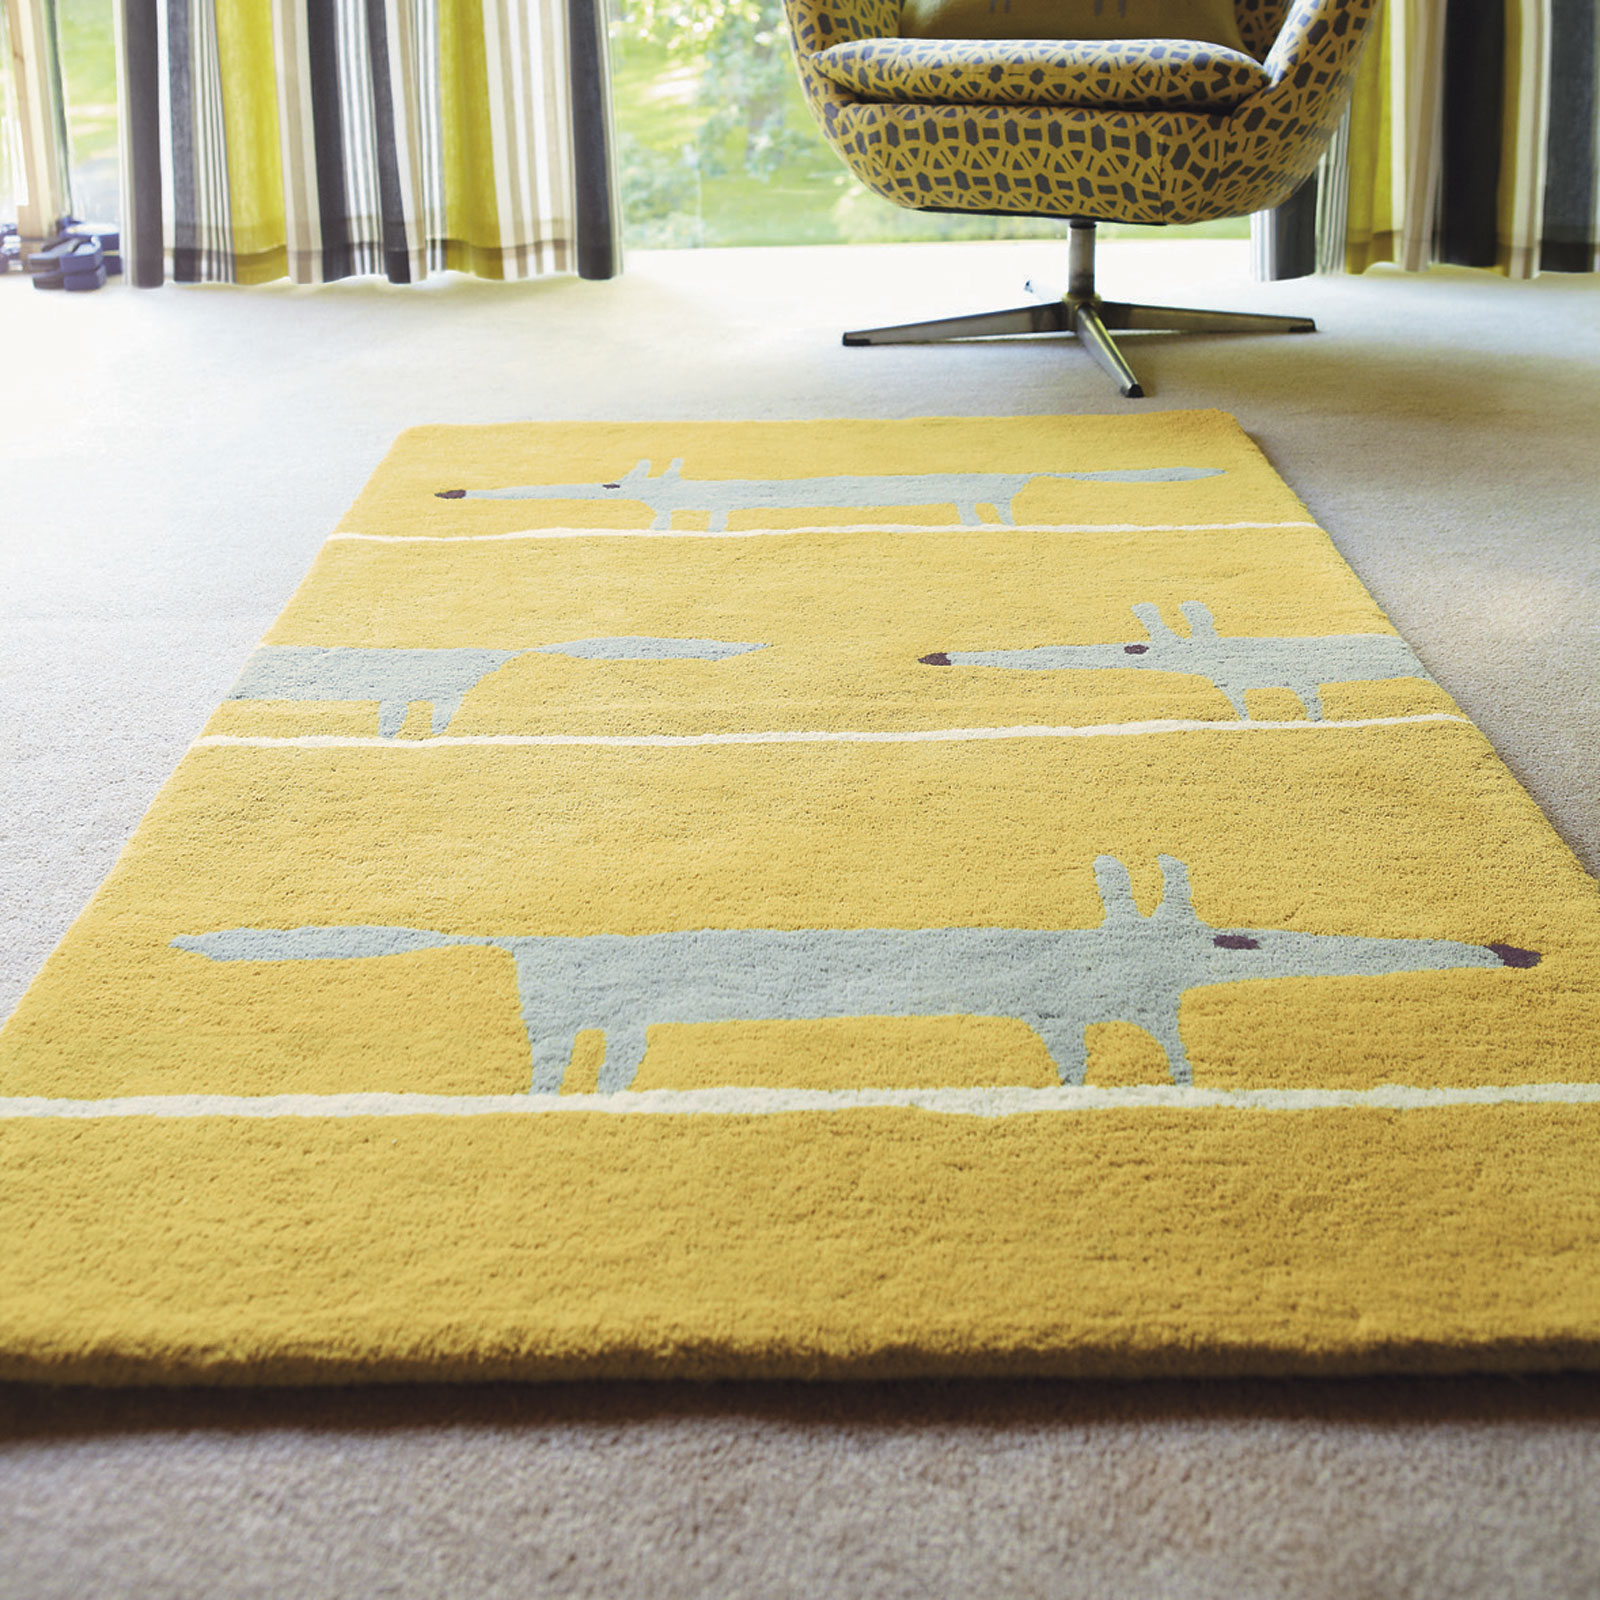 Scion Mr Fox Rugs 25306 Mustard Free Uk Delivery The